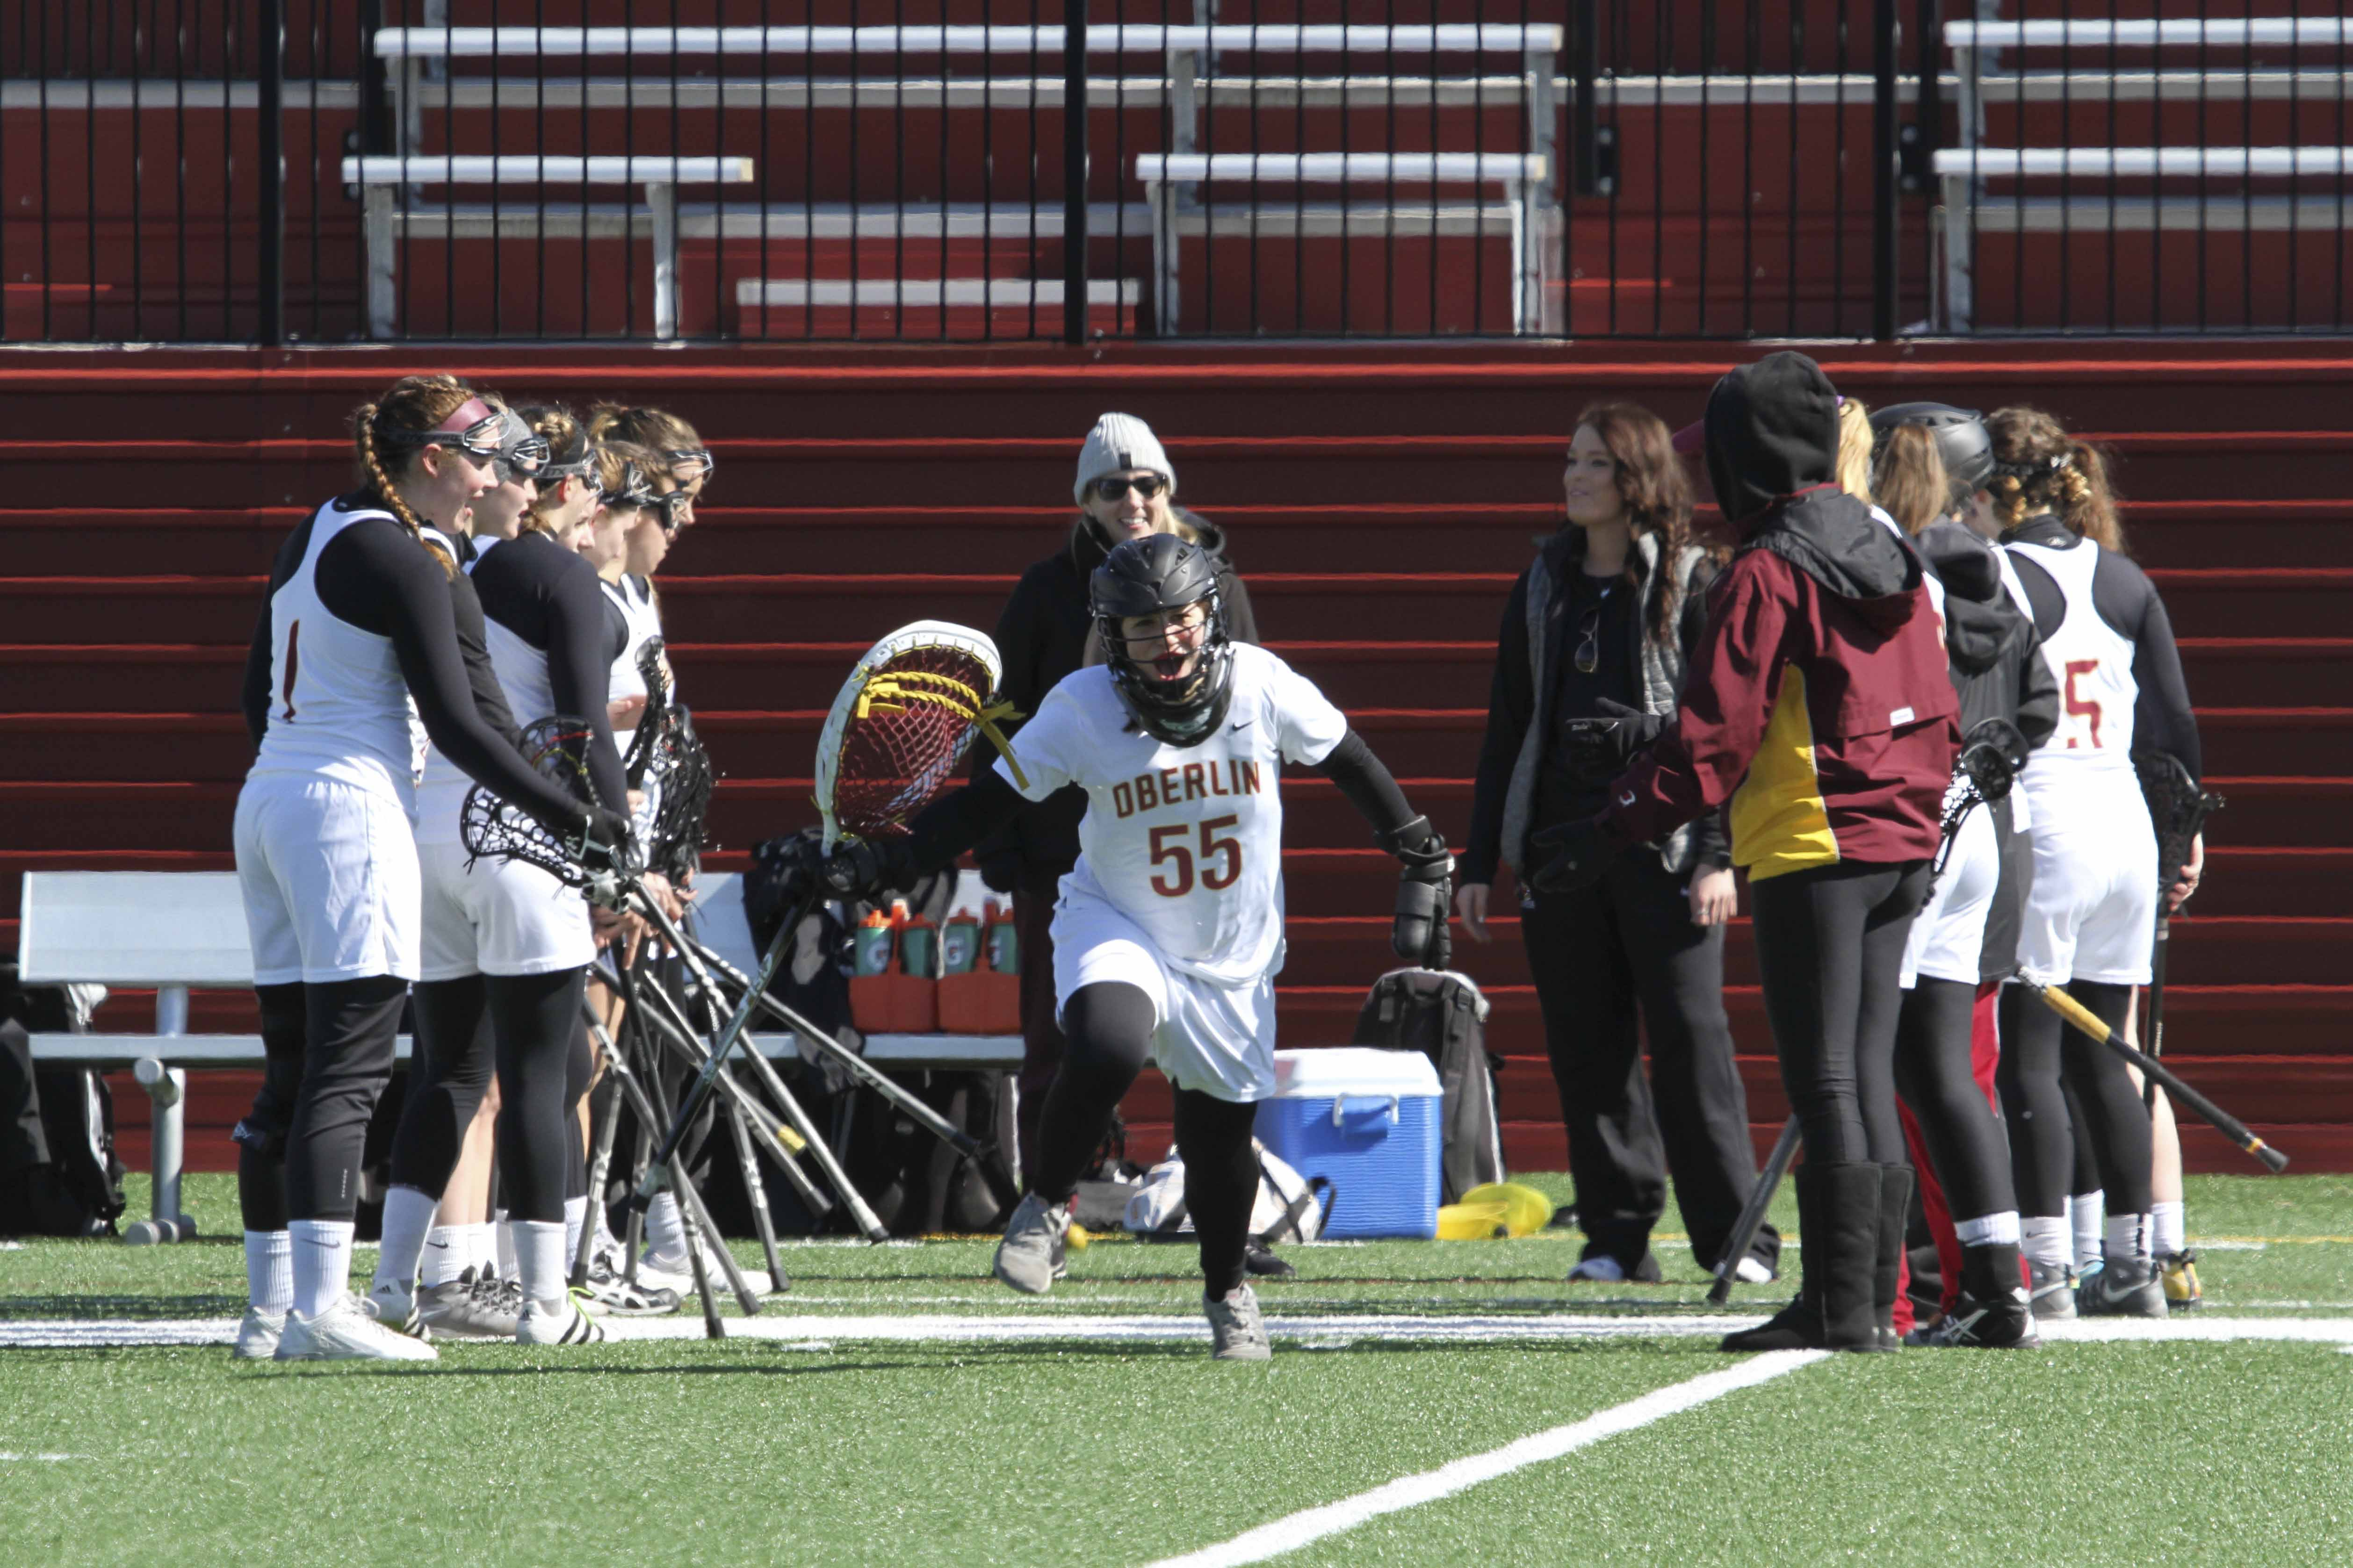 Sophomore goalie Siena Marcelle runs through a tunnel of teammates onto the field in Oberlin's home opener against Kalamazoo College March 4. The Yeowomen will continue conference play when they travel to take on Ohio Wesleyan University at 1 p.m. tomorrow.